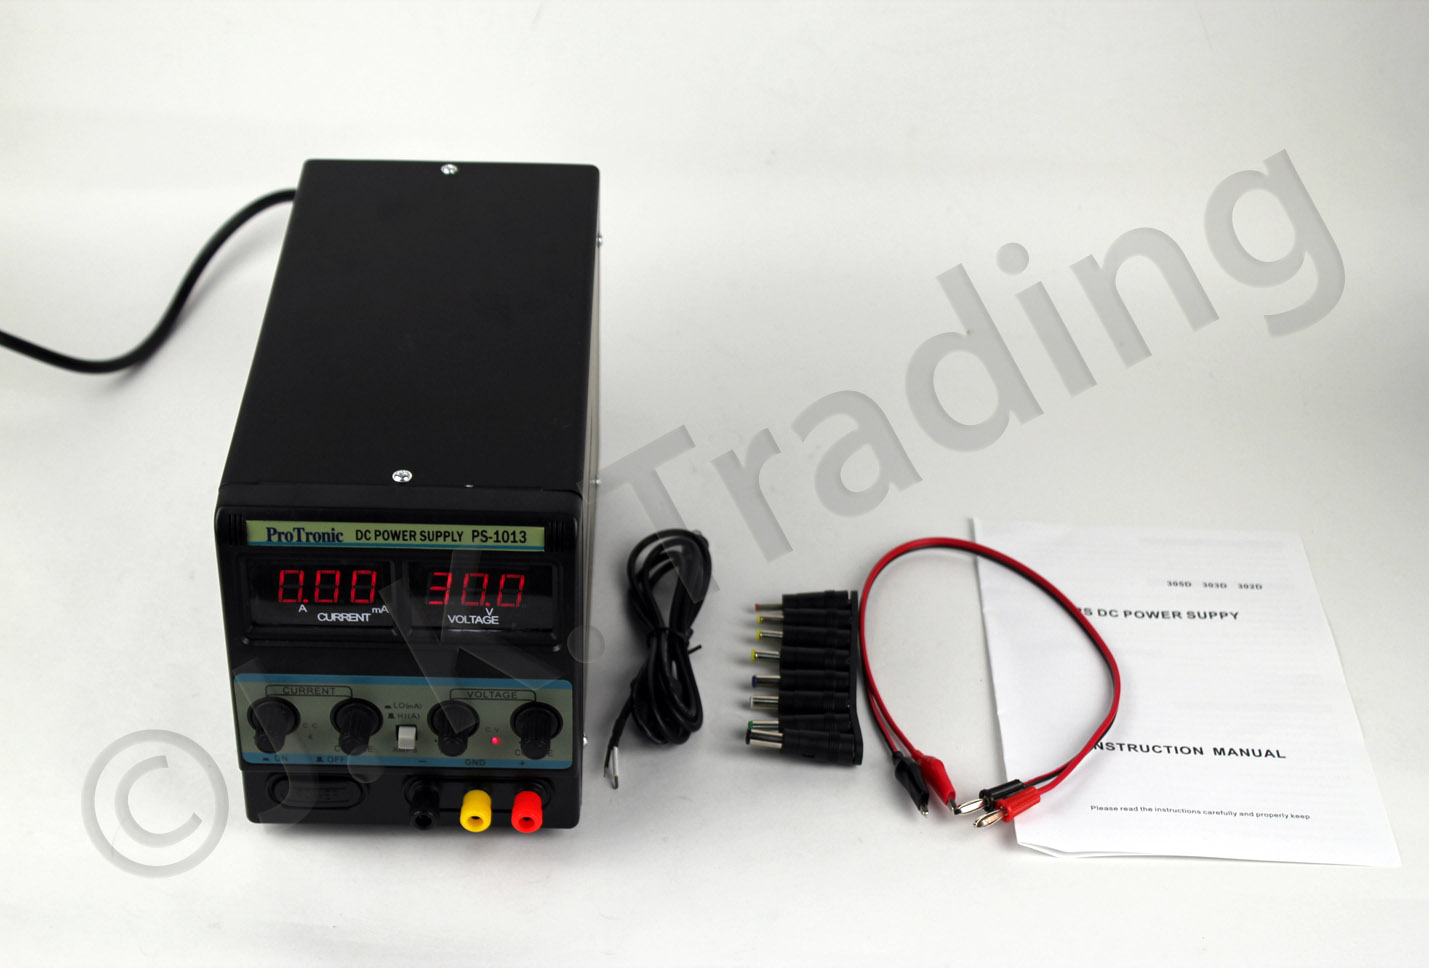 DC power supply units (two of them!) now available through JK Trading